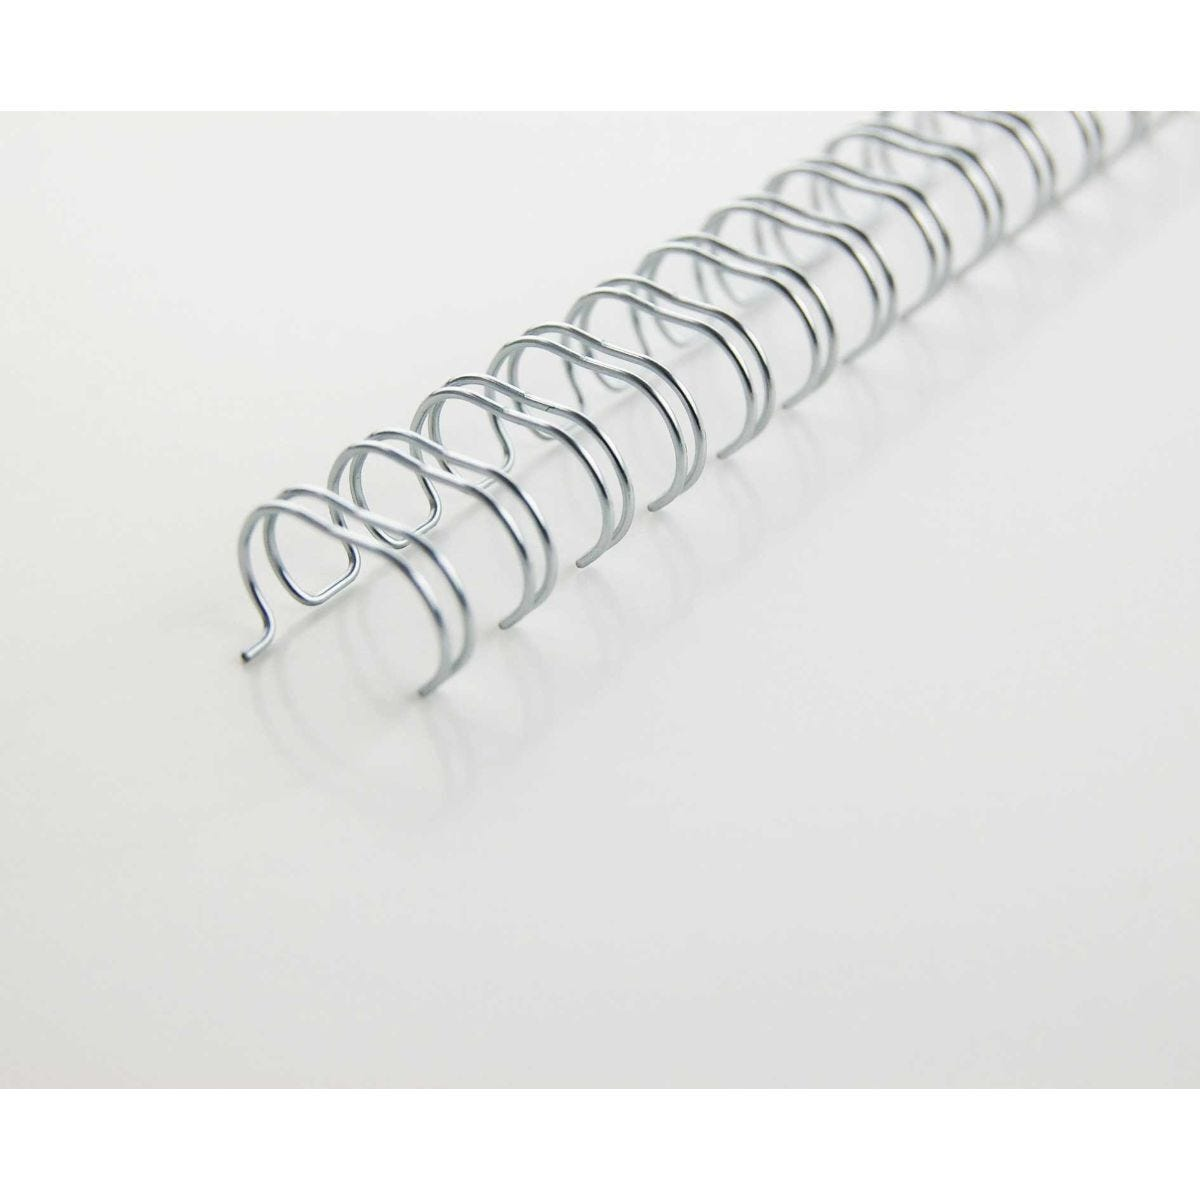 Acco Wirebind Binding Wires Pack of 100 6mm